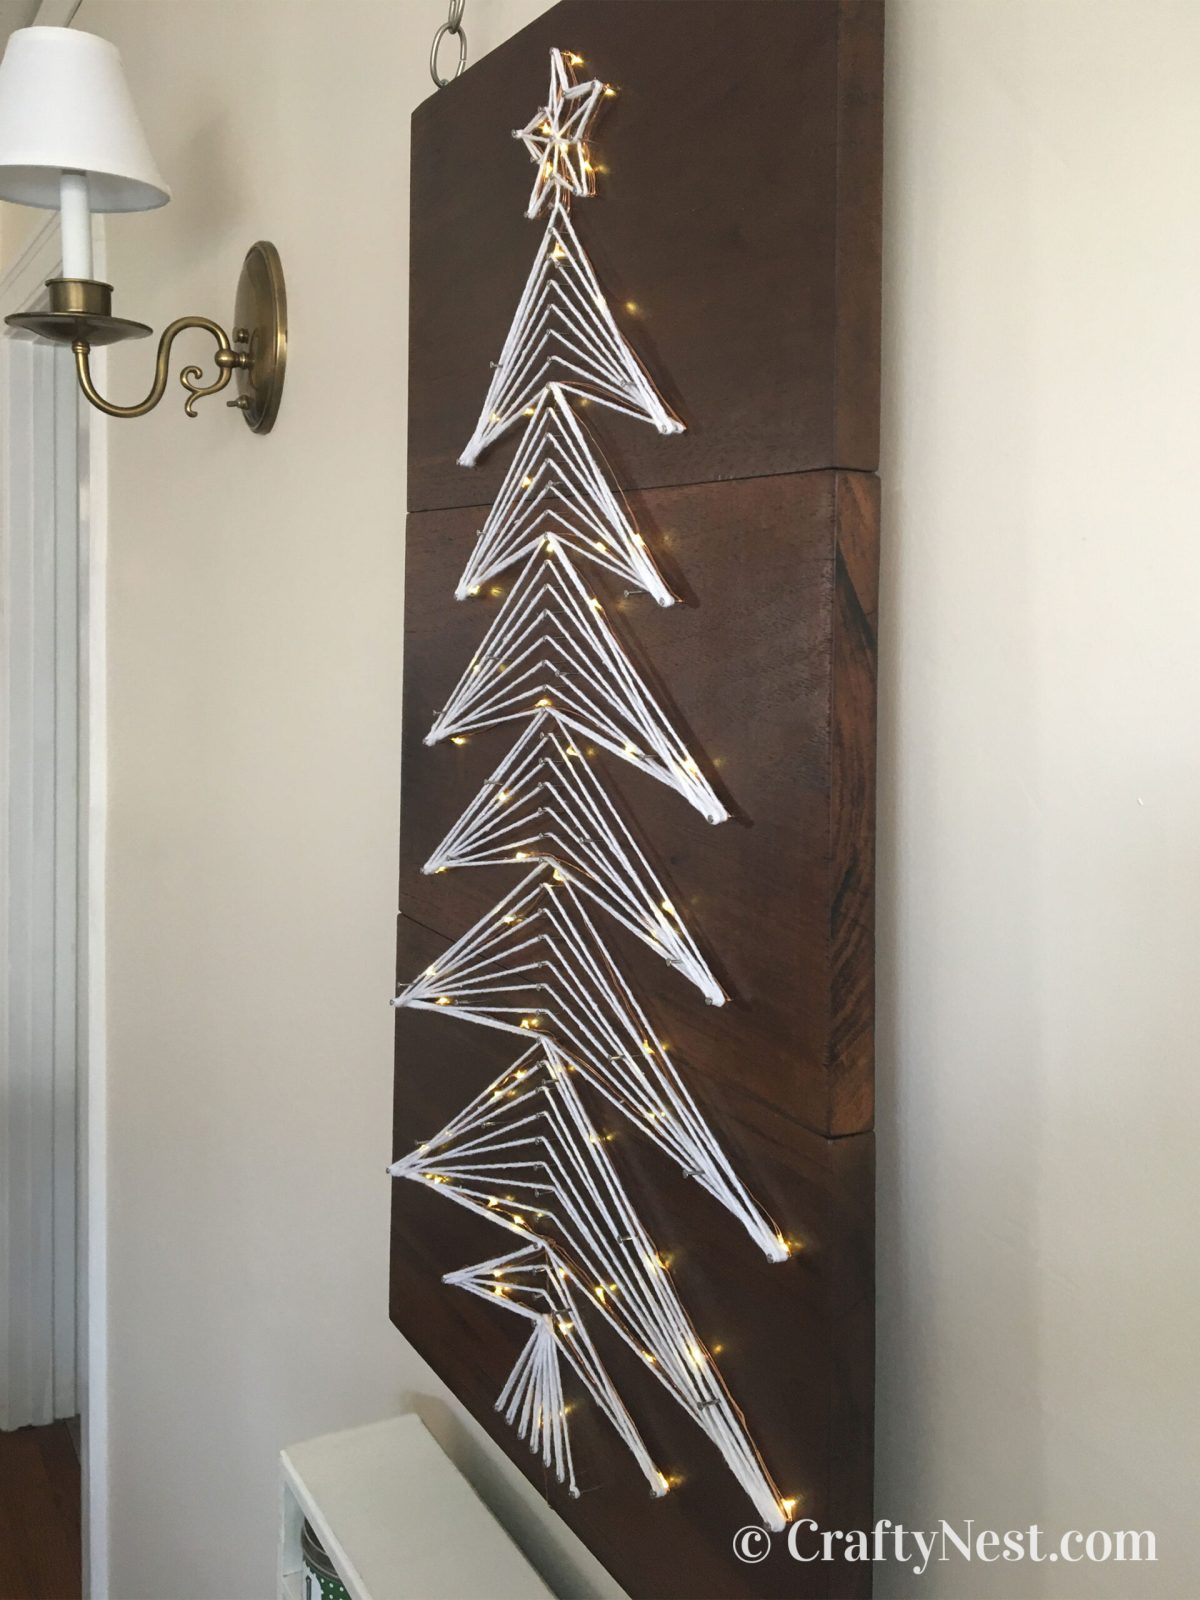 Side view of string-art Christmas tree, photo